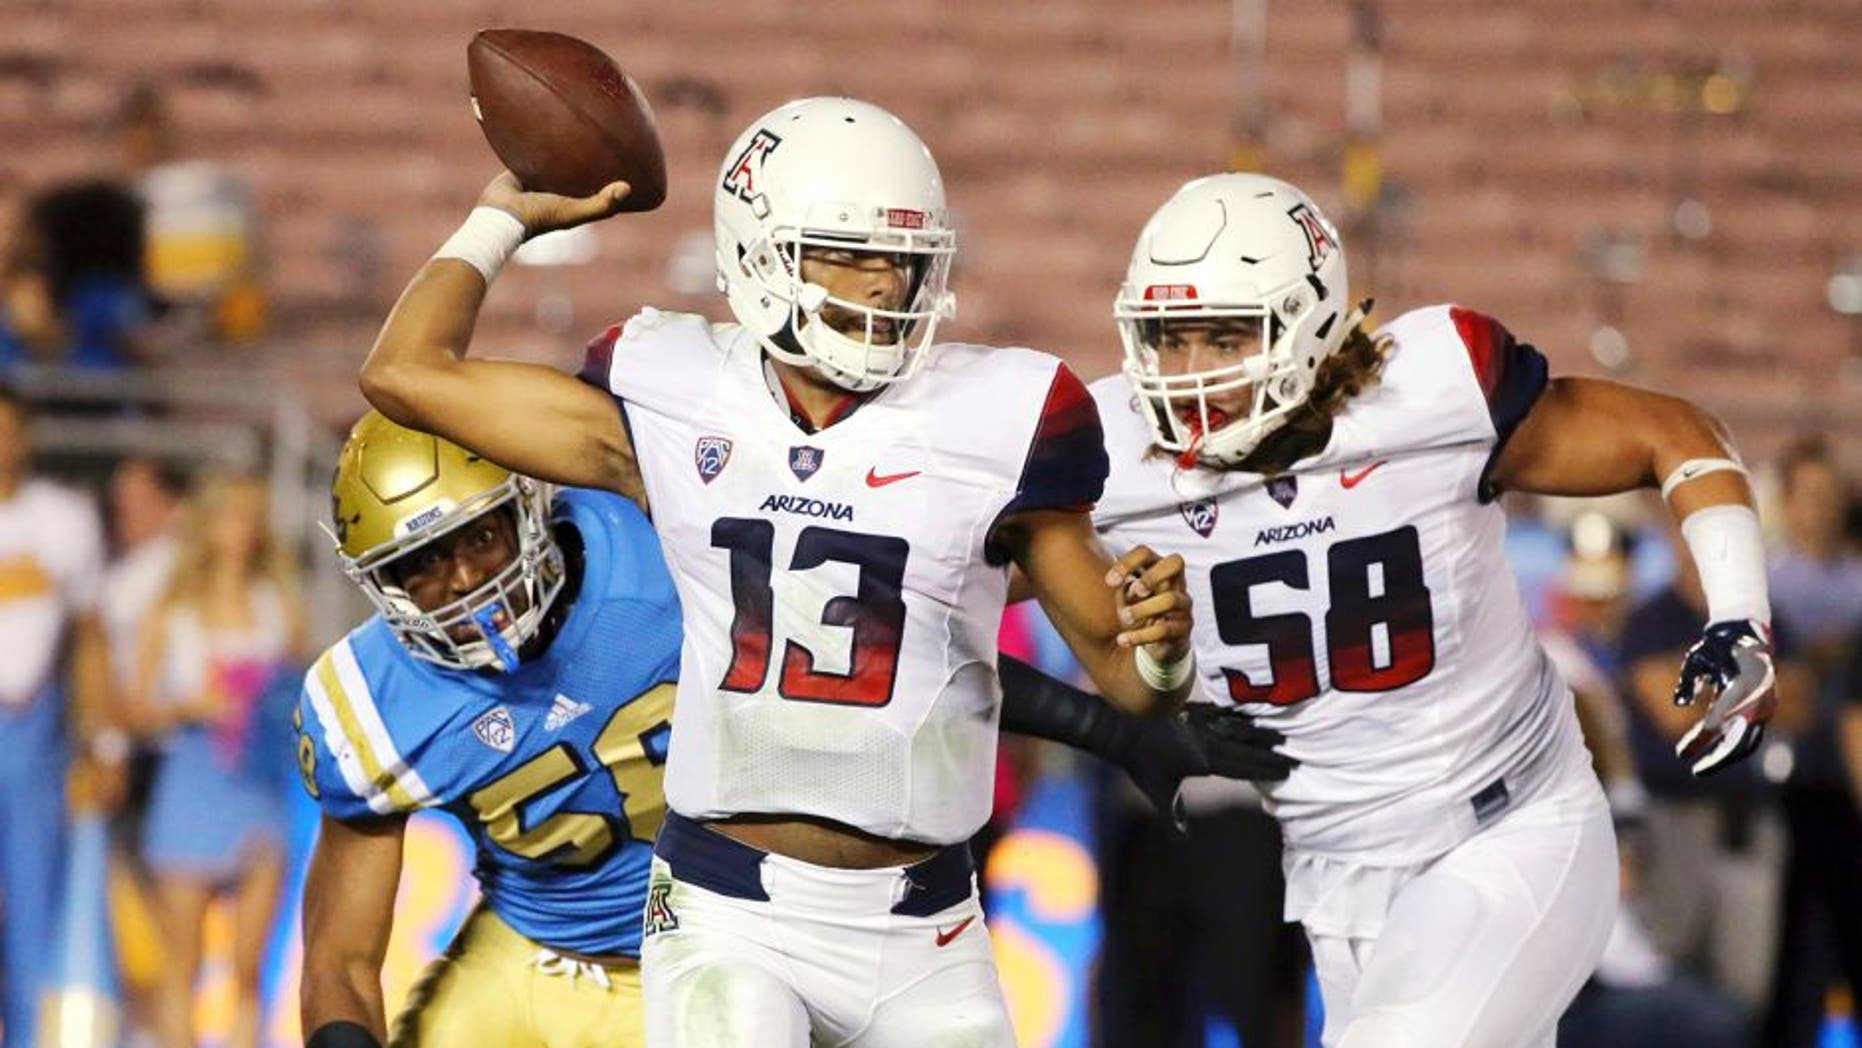 Arizona quarterback Brandon Dawkins (13) passes under pressure from UCLA defensive lineman Deon Hollins (58), left, with protection from Arizona offensive lineman Layth Friekh (58), right, in the first half of an NCAA college football game Saturday, Oct. 1, 2016, in Pasadena, Calif. UCLA won, 45-24. (AP Photo/Reed Saxon)